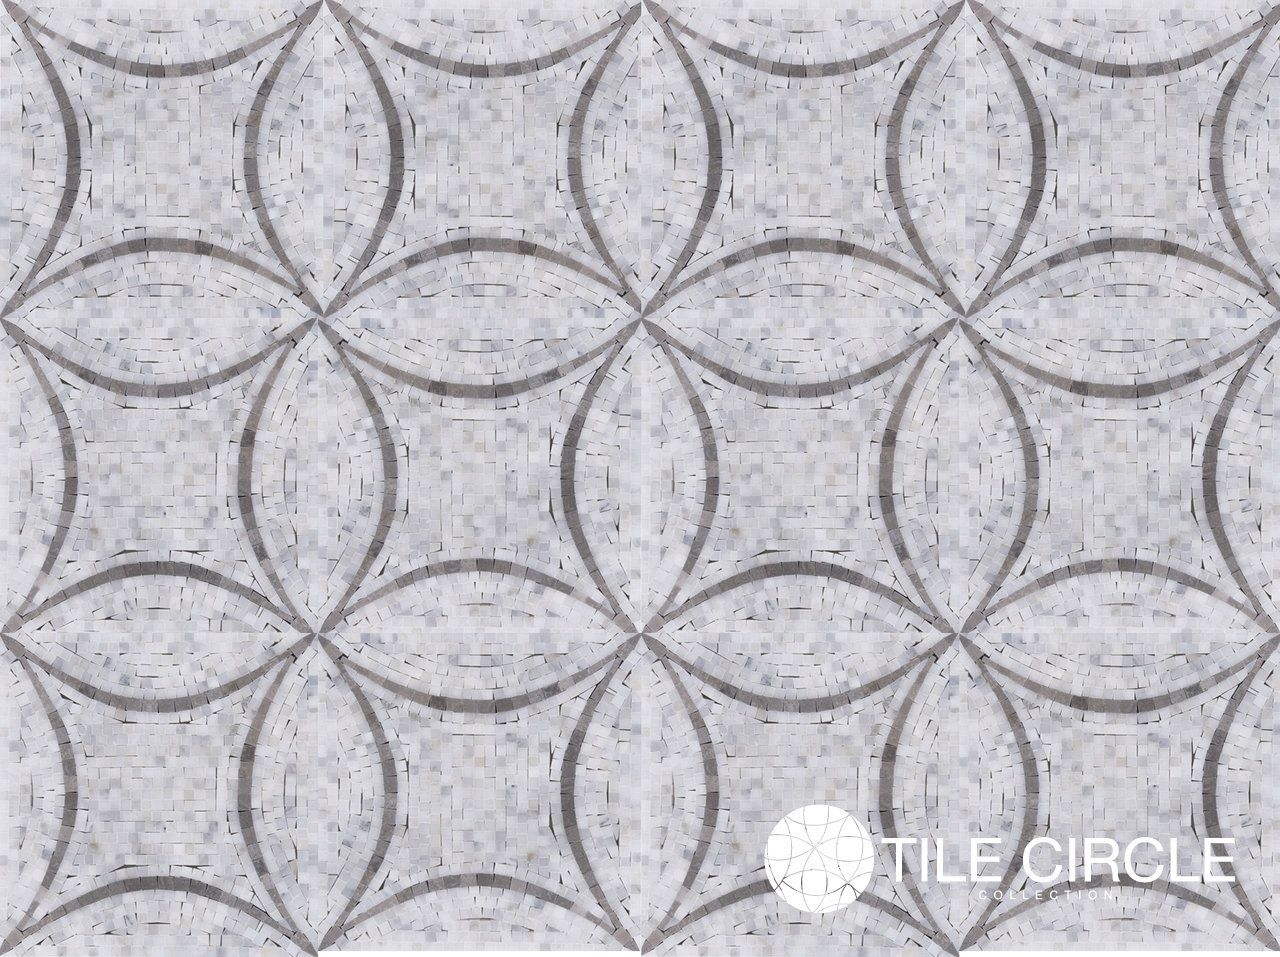 Gorgeous mosaic tile pattern unique grey circles mosaic tile for gorgeous mosaic tile pattern unique grey circles mosaic tile for bathroom floors and walls dailygadgetfo Images